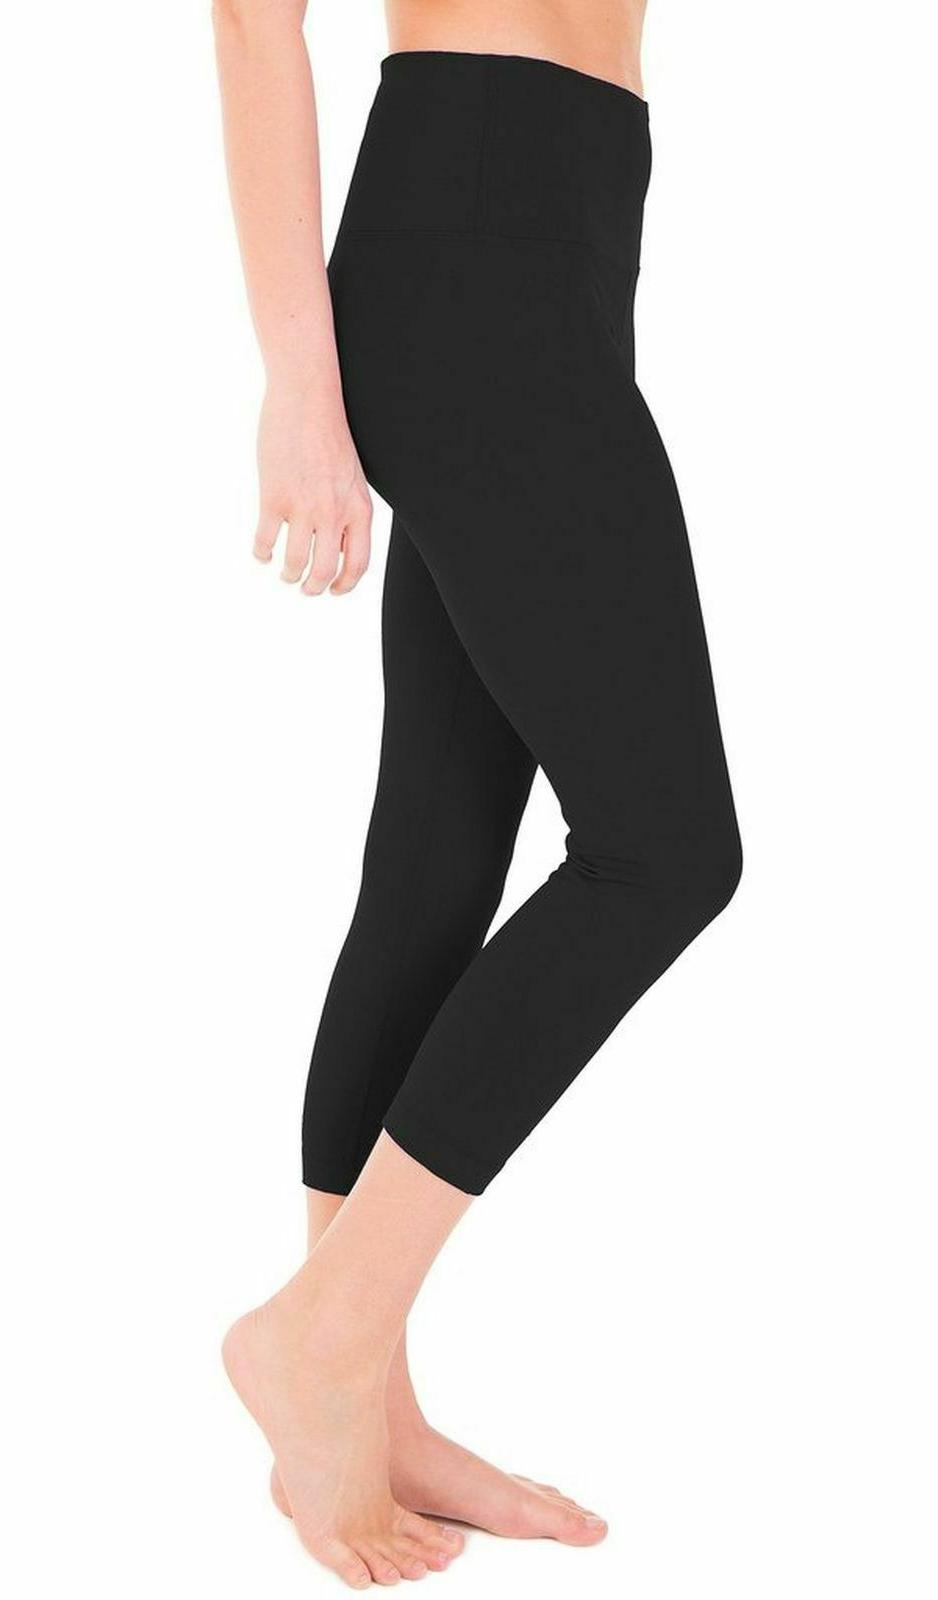 90 Women's Power Pants Black